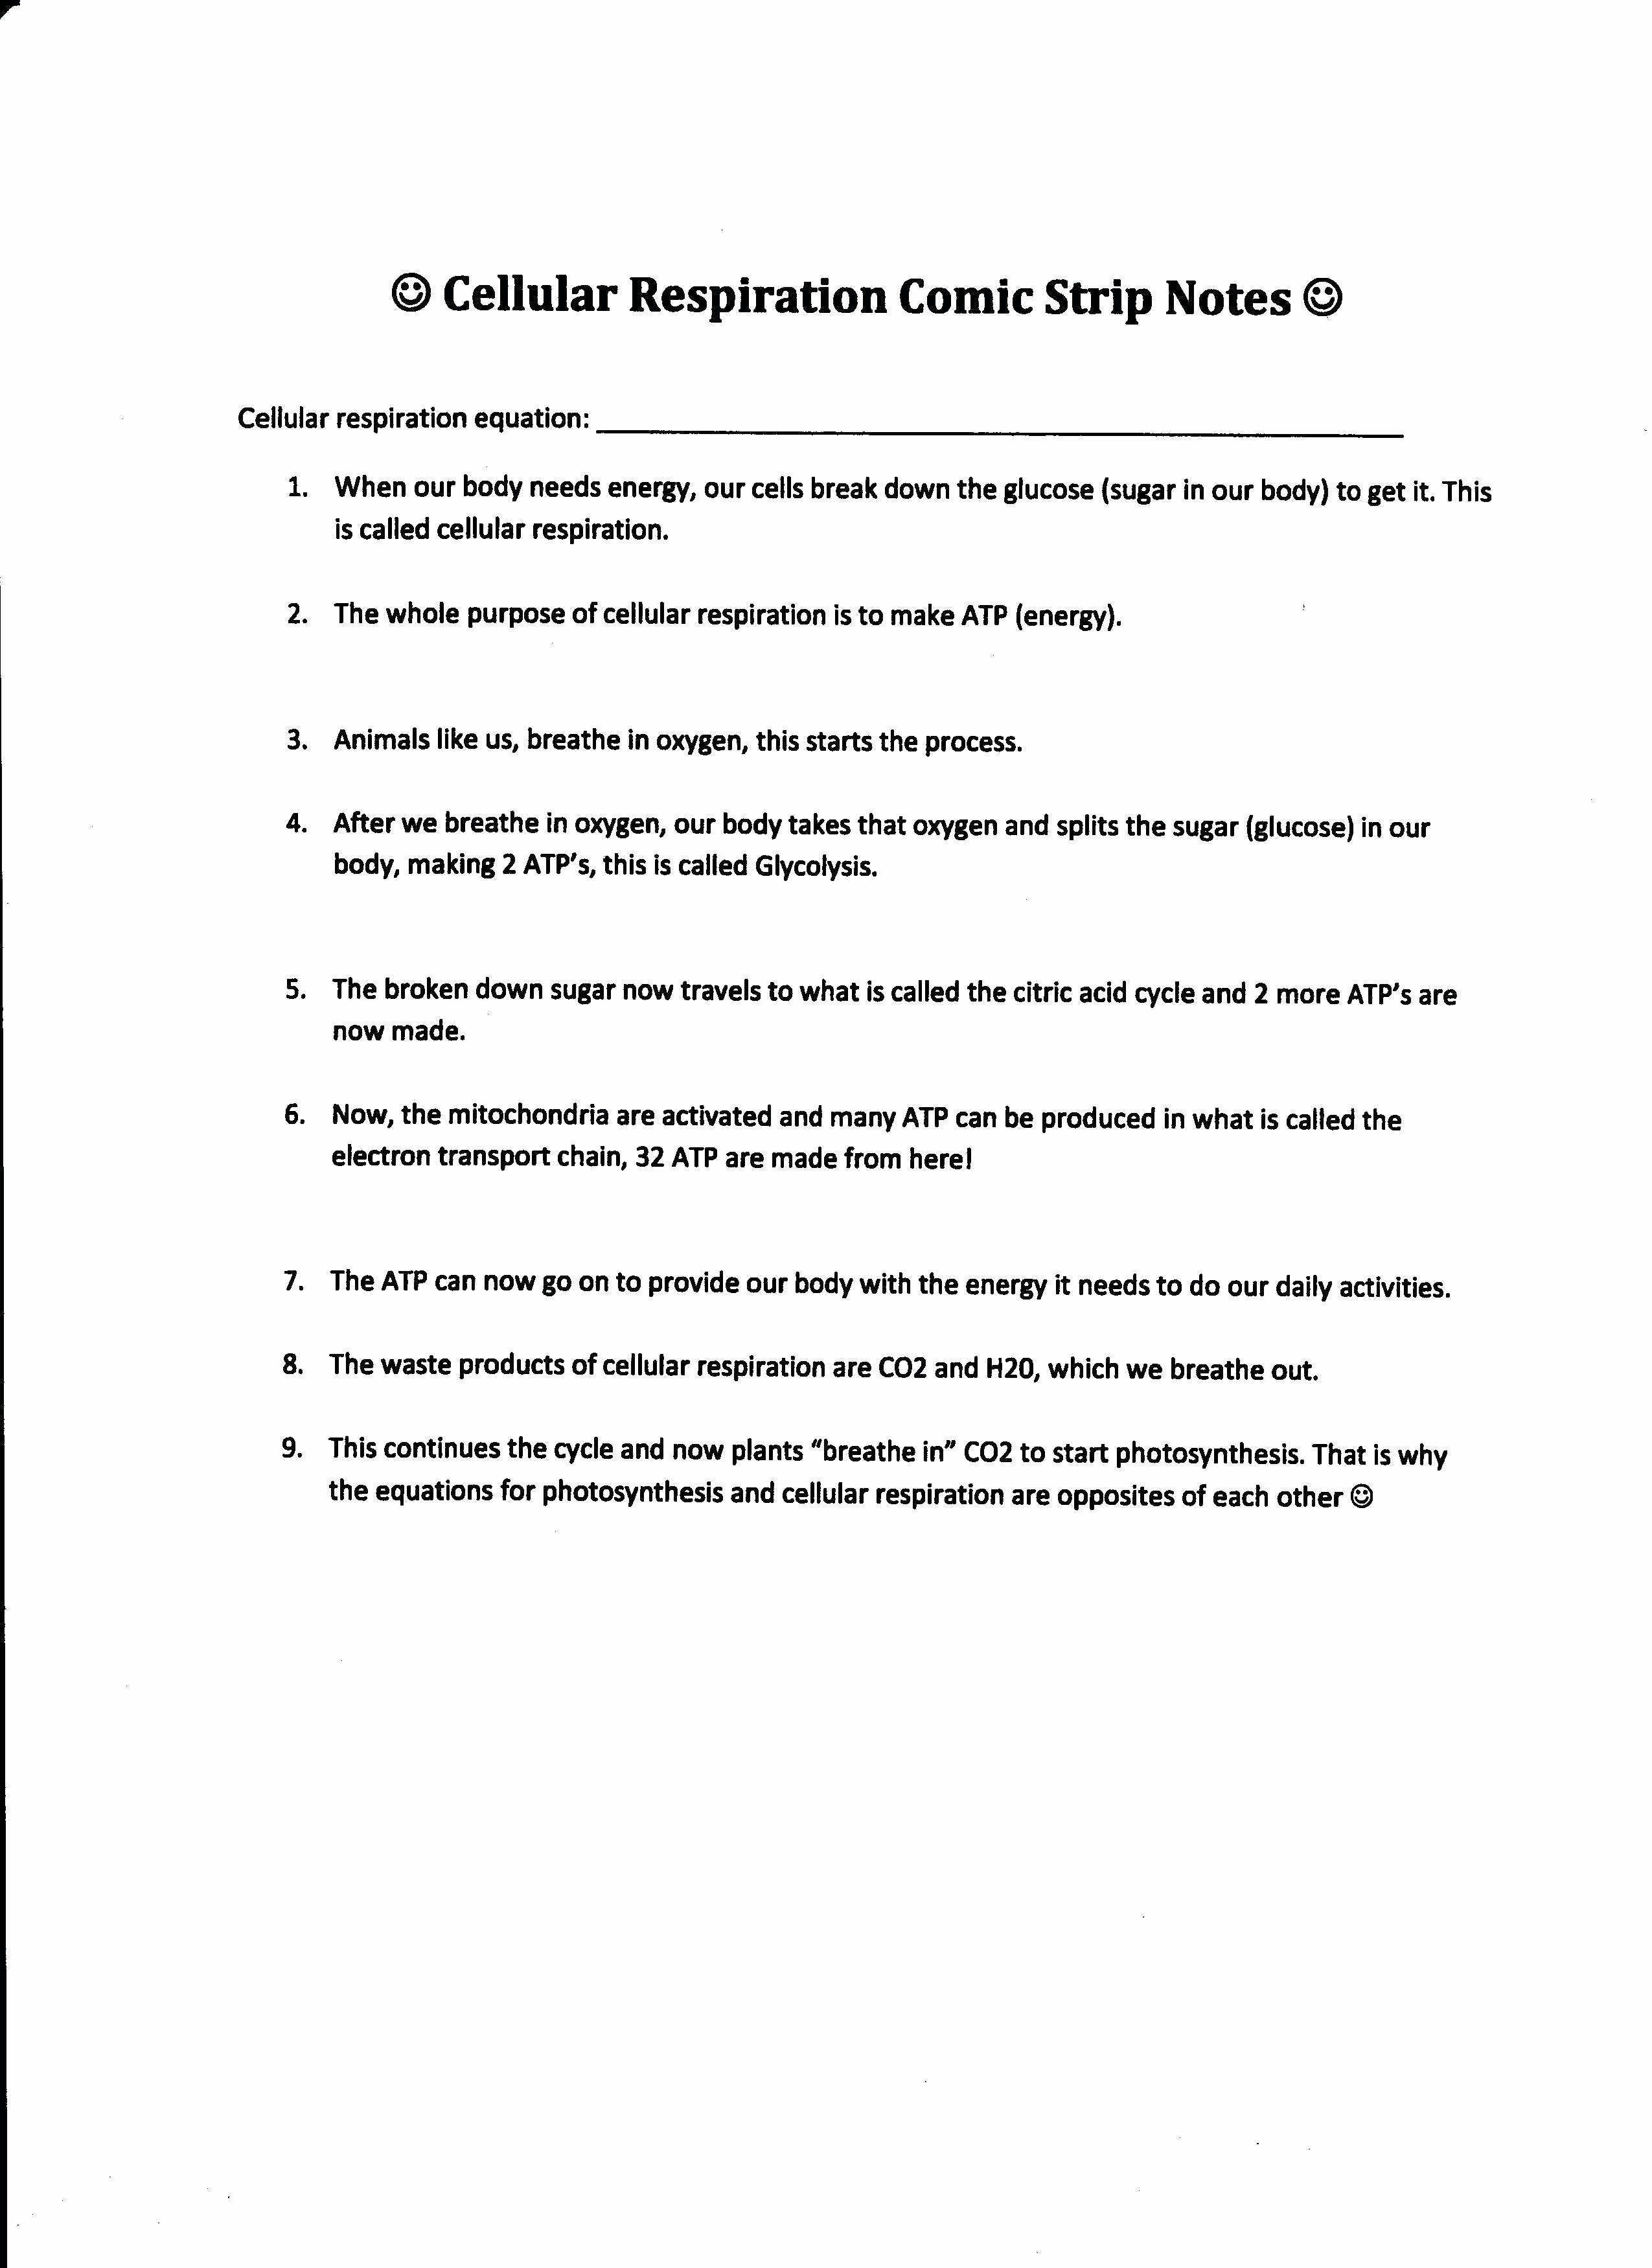 Bill Nye Motion Worksheet Answers Fresh Bill Nye Worksheets Wetlands Justswimfl Best Ideas Of